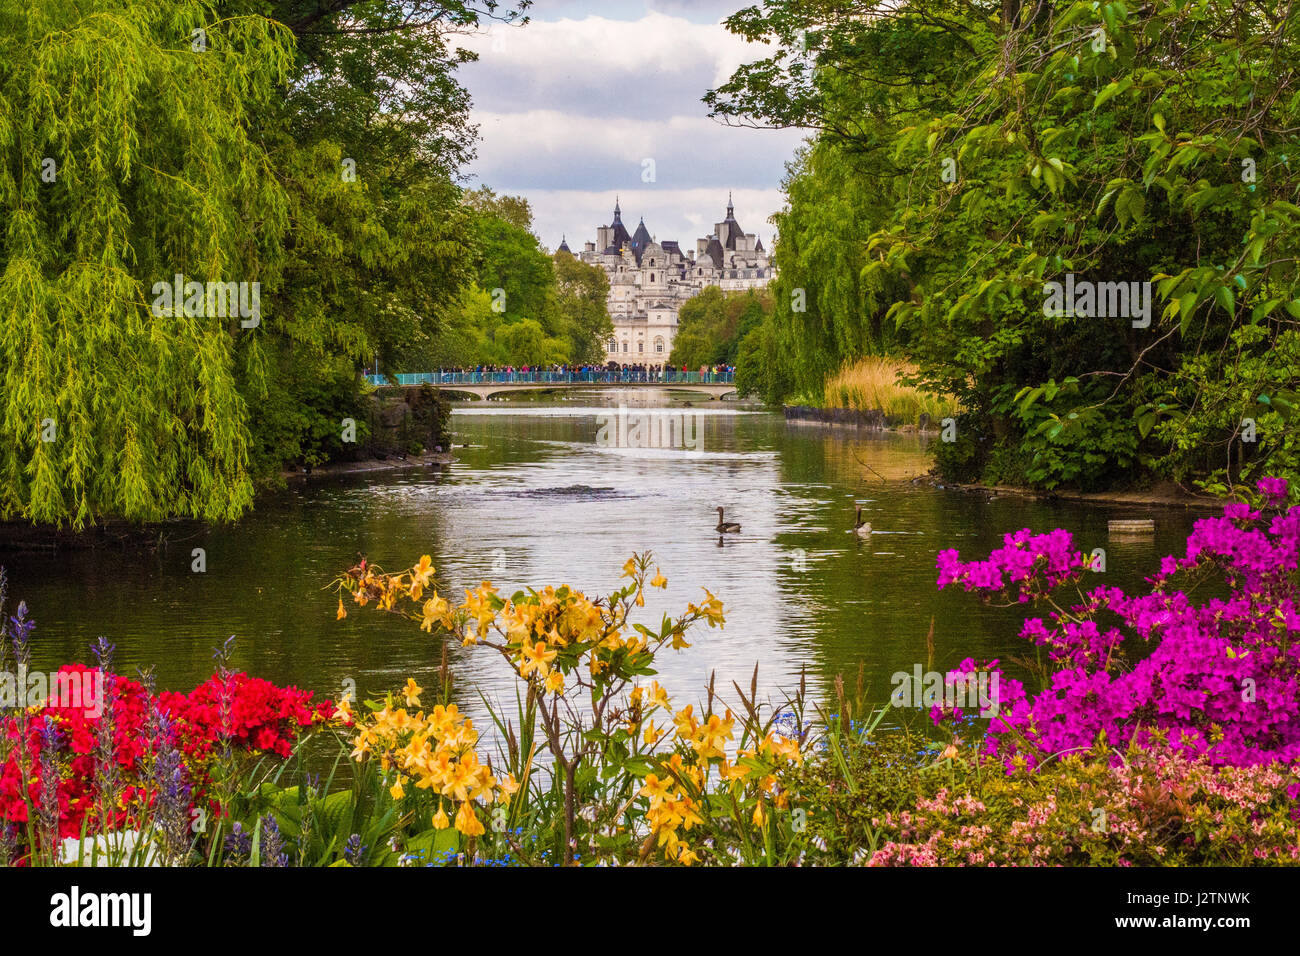 St James Park London with Horse Guards Parade in the background. Stock Photo